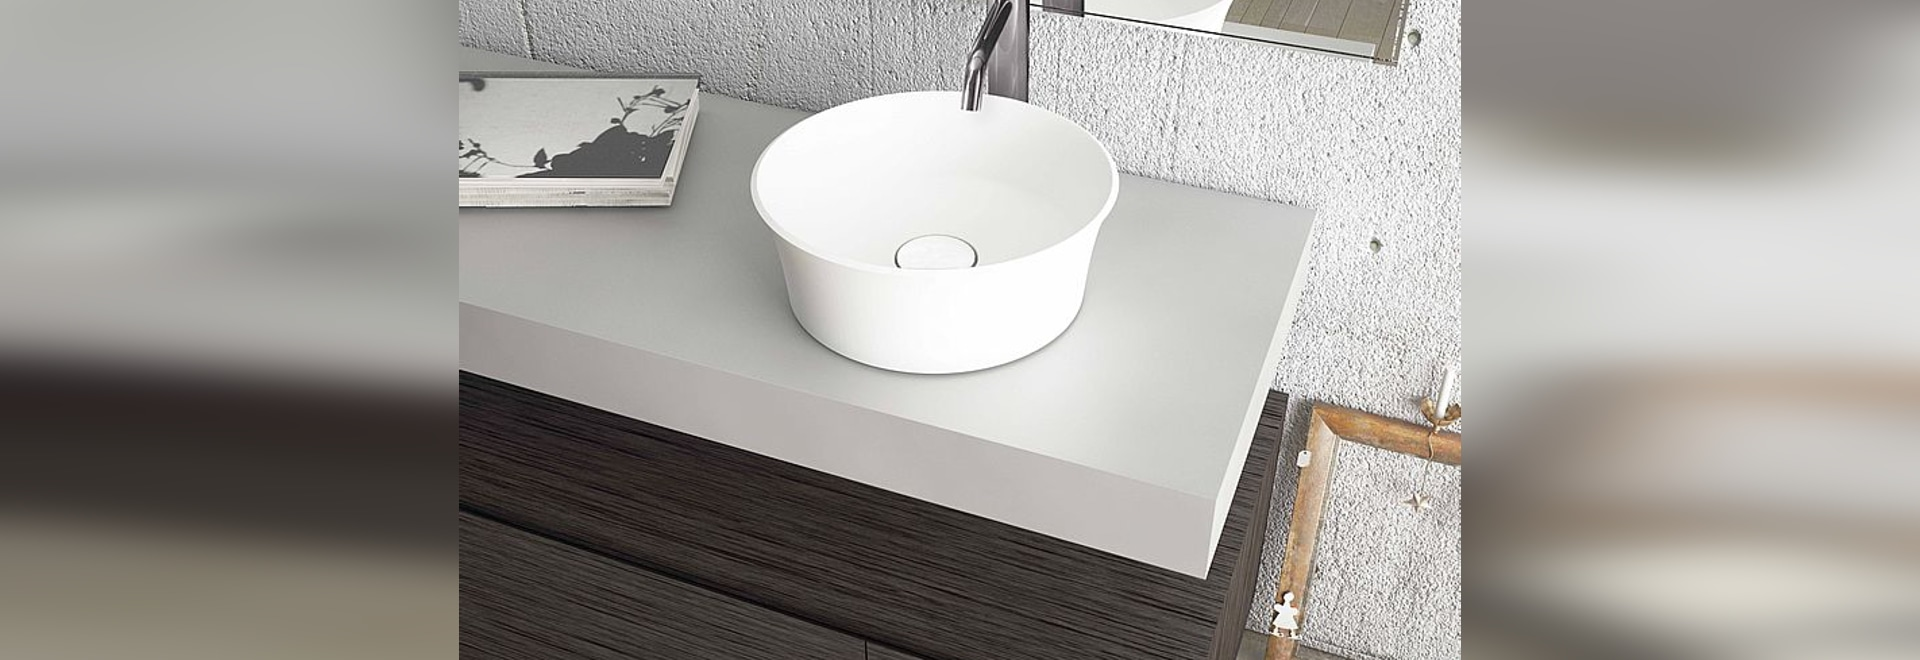 Eco-friendly blu•stone™ collection expands for 2016 - NEW basins